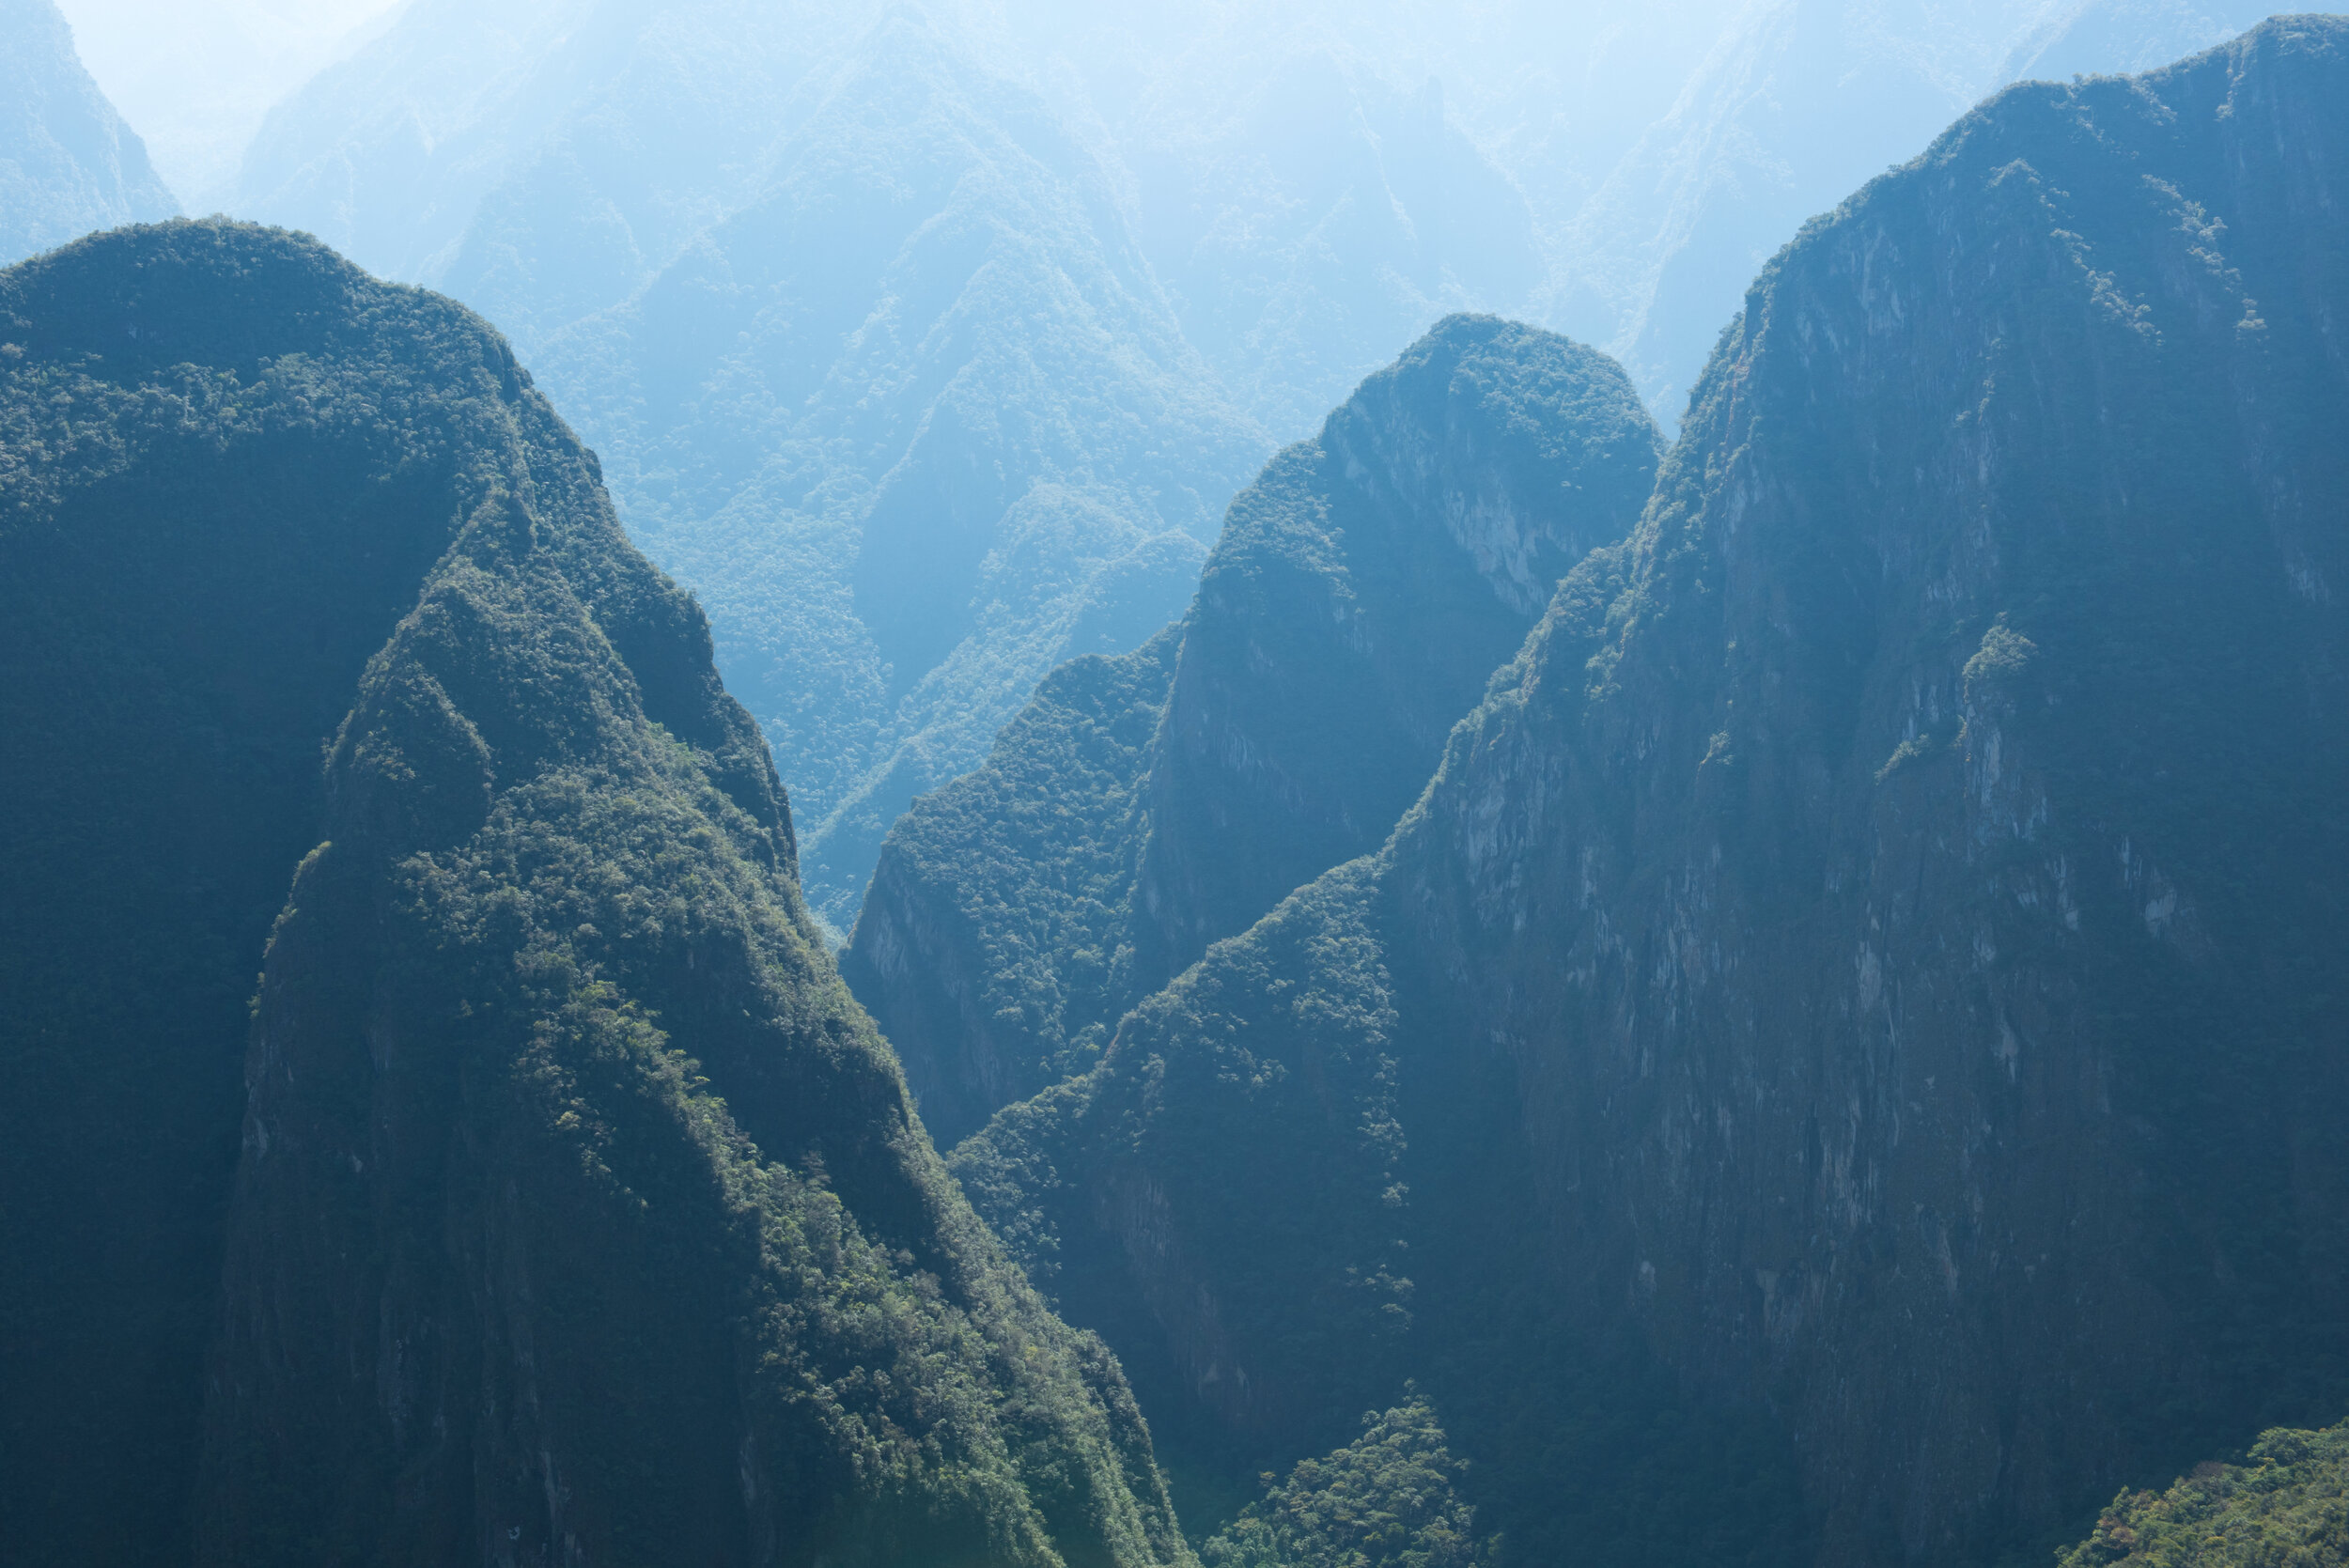 Hazy sunrise through the Andes Mountains that surround the Machu Picchu Incan Citadel.